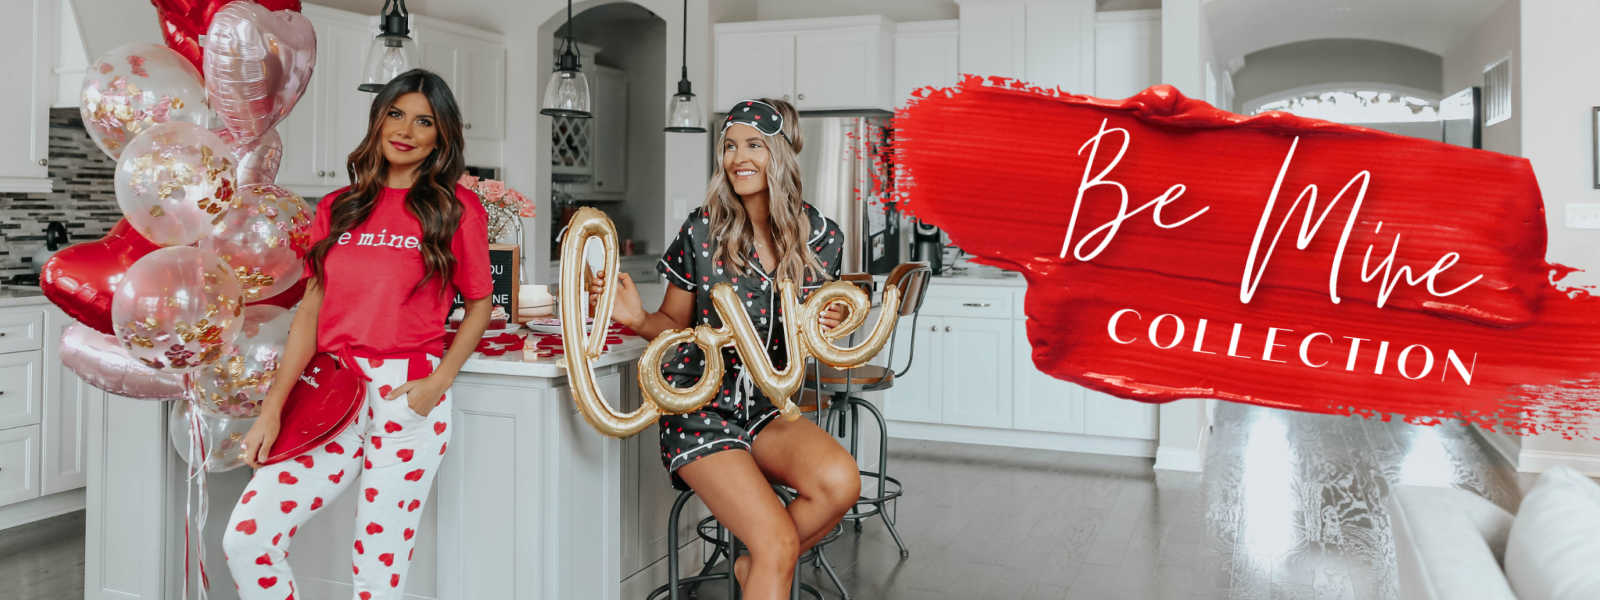 Magnolia Boutique Be Mine Collection is now live!